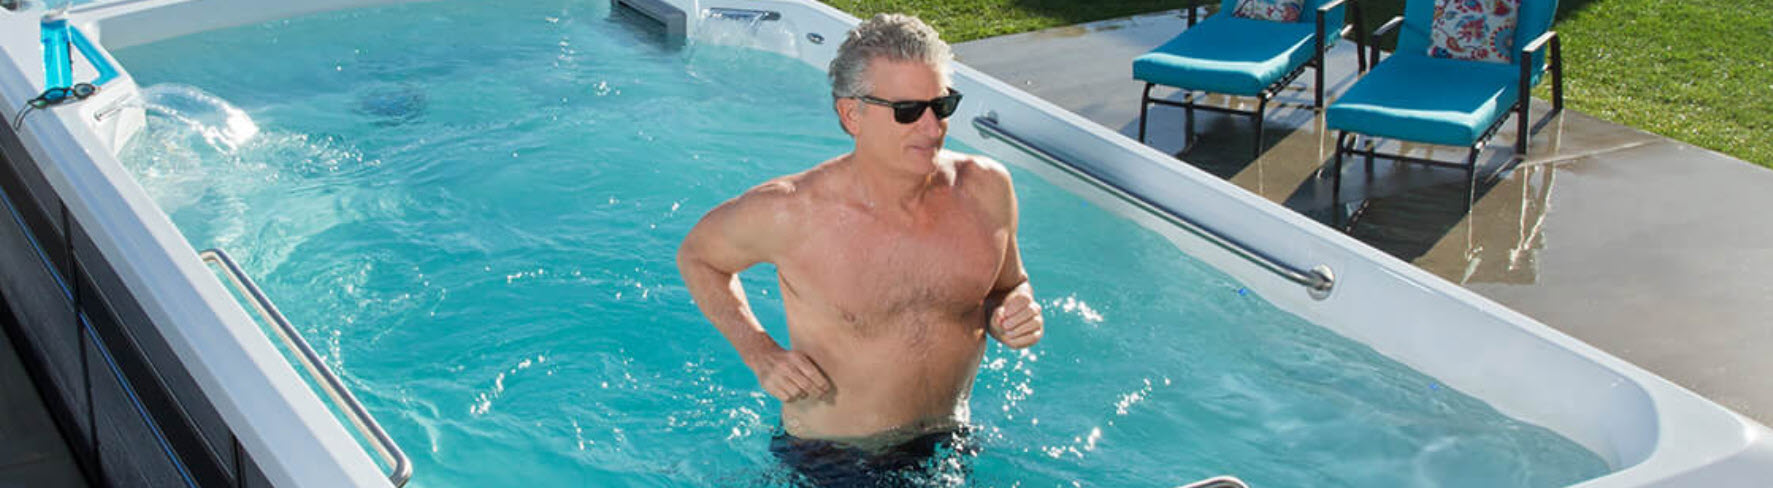 The 3 Best Uses for Your Swim Spa, Lap Pools for Sale Burnsville